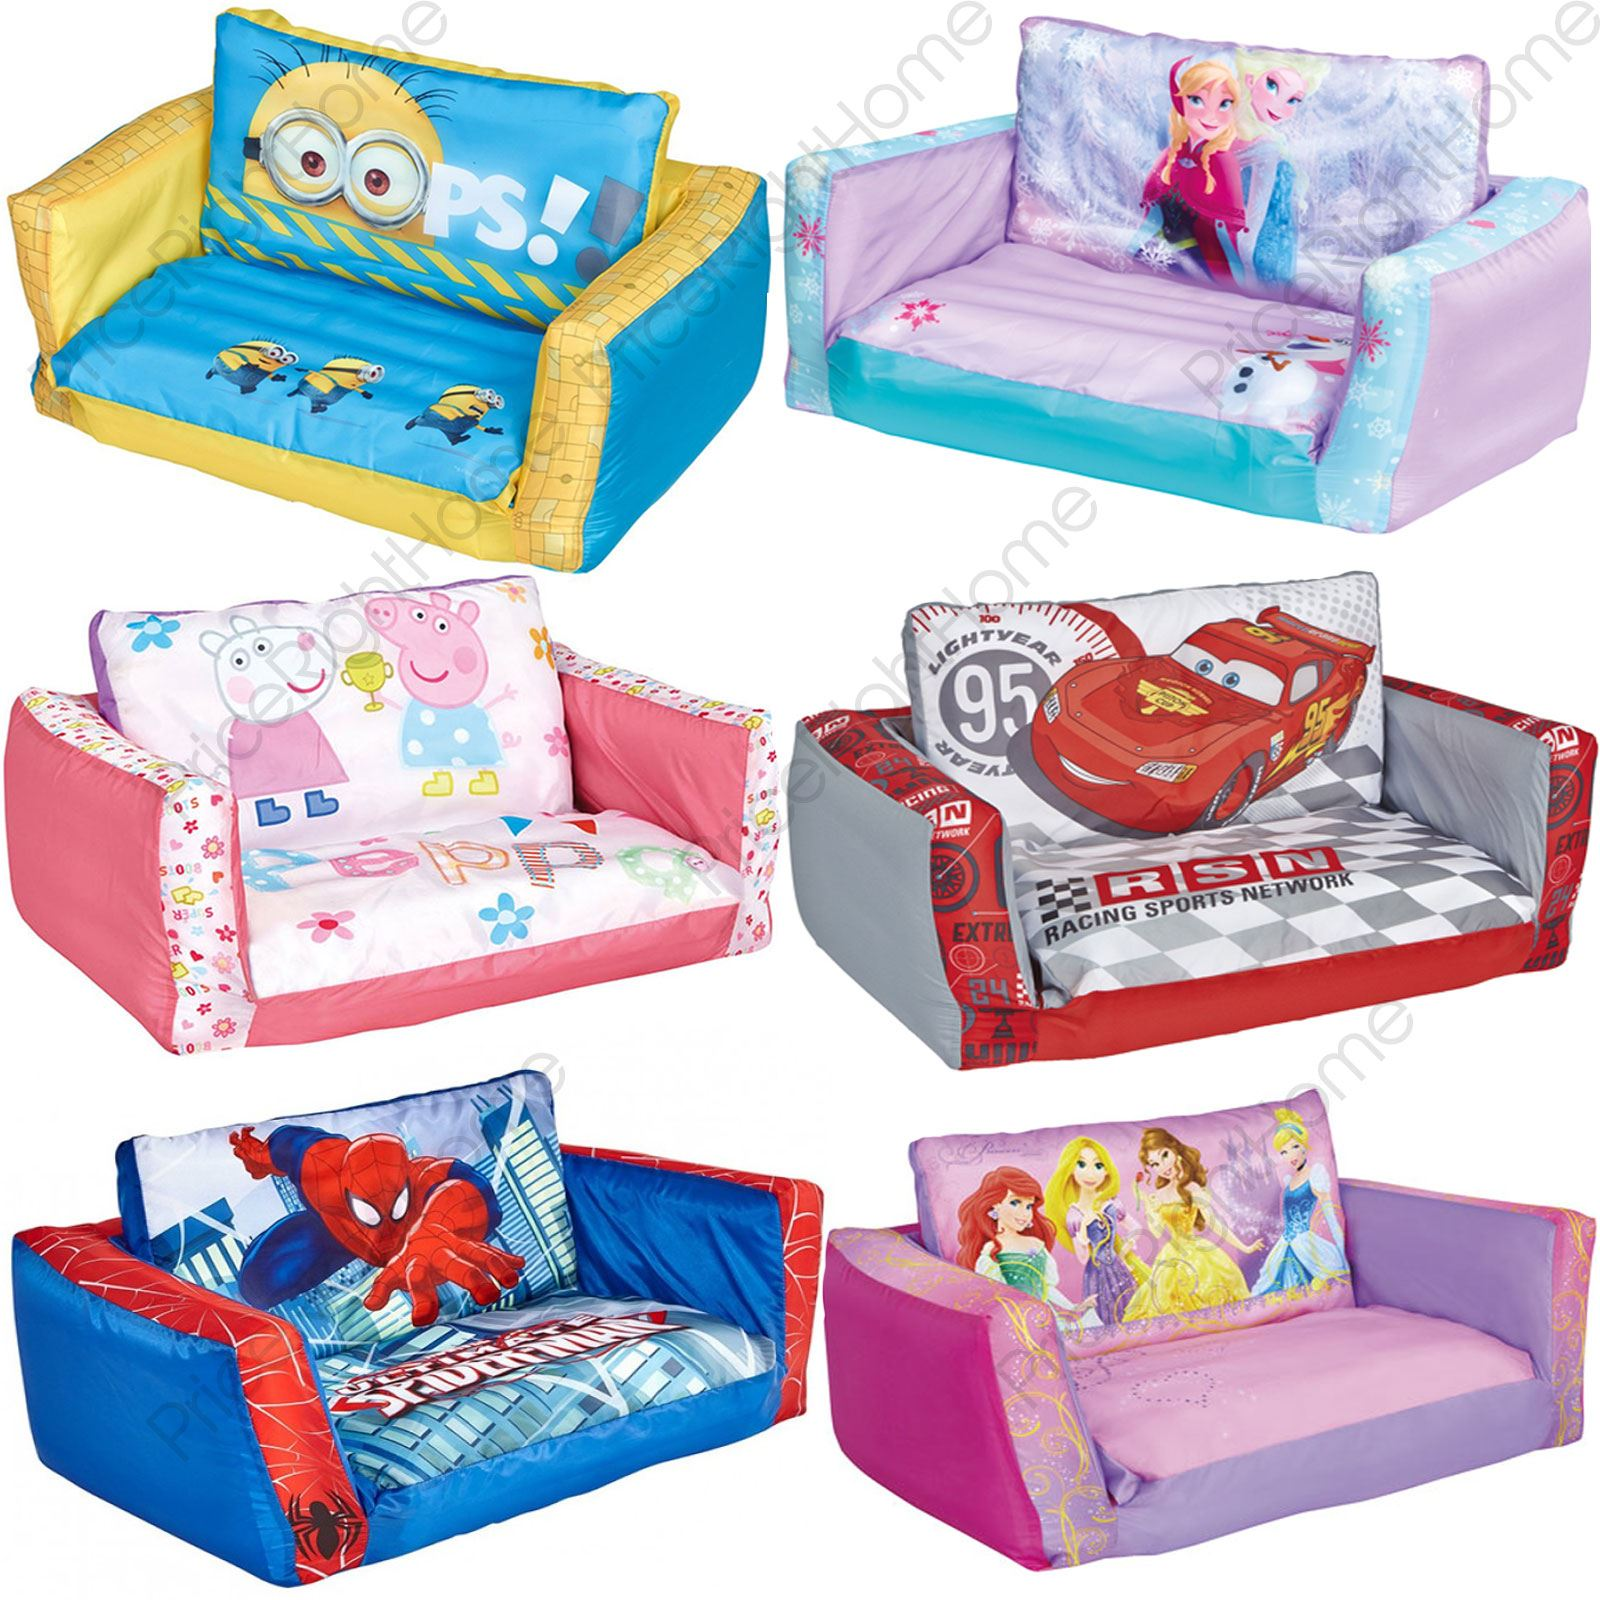 disney princess flip out sofa leather sectional indianapolis range inflatable kids room new minions